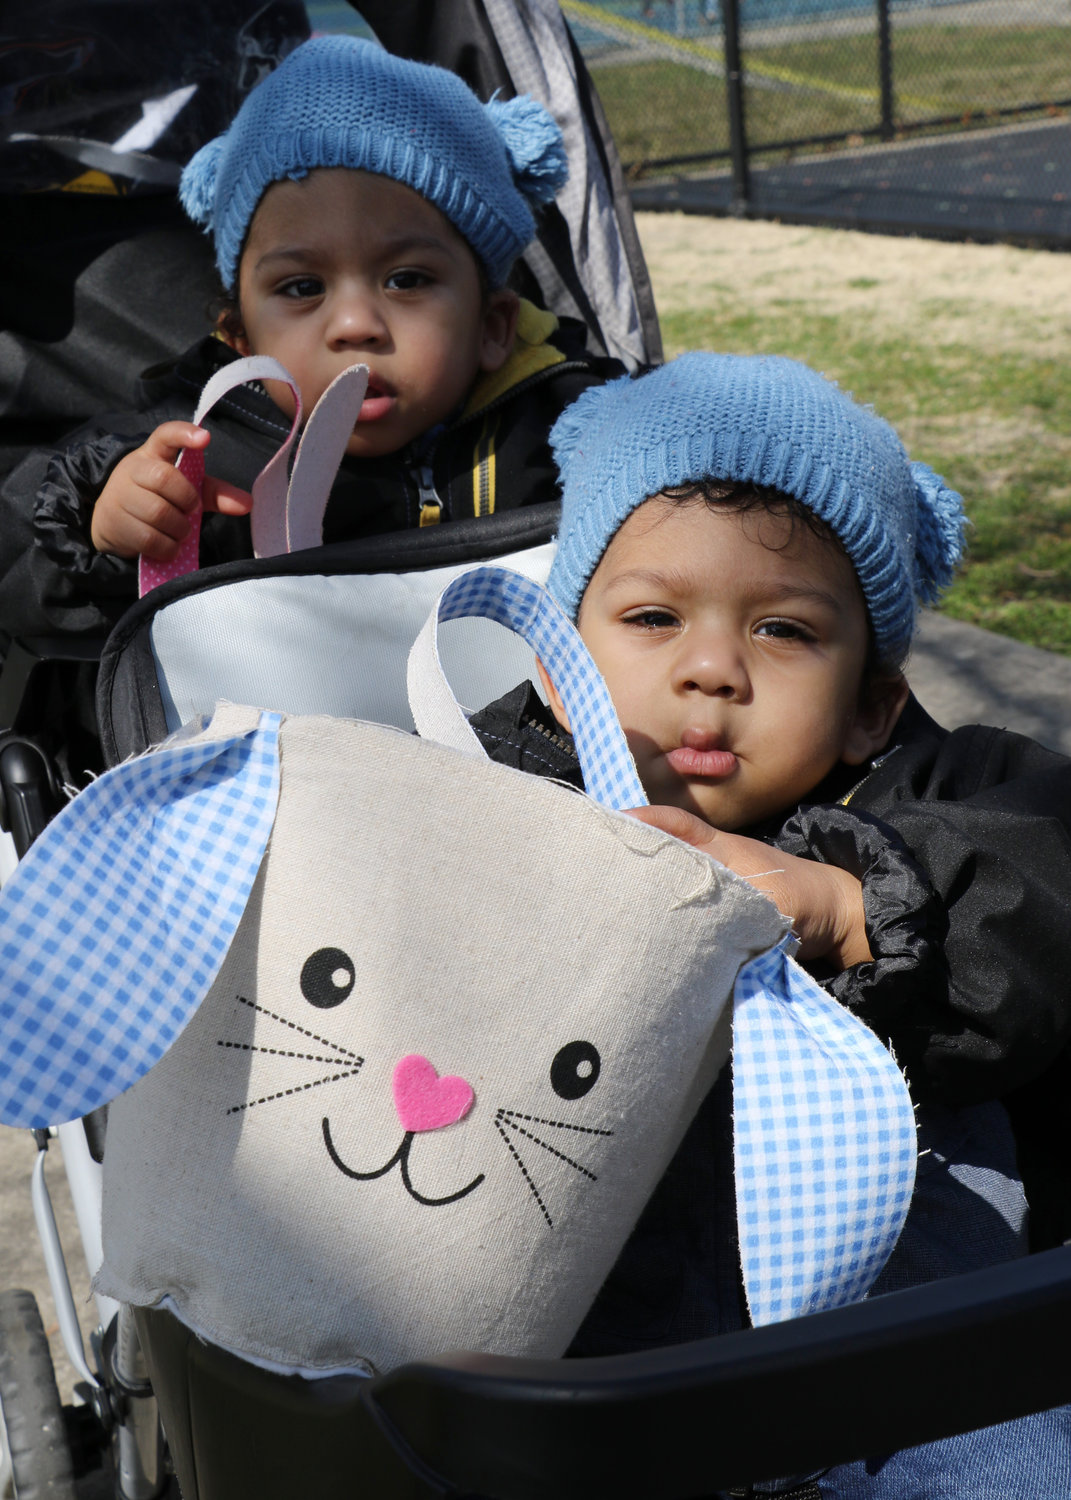 Two-year-old twins Oaura and Winter Santos had their bunny baskets ready to some sweets